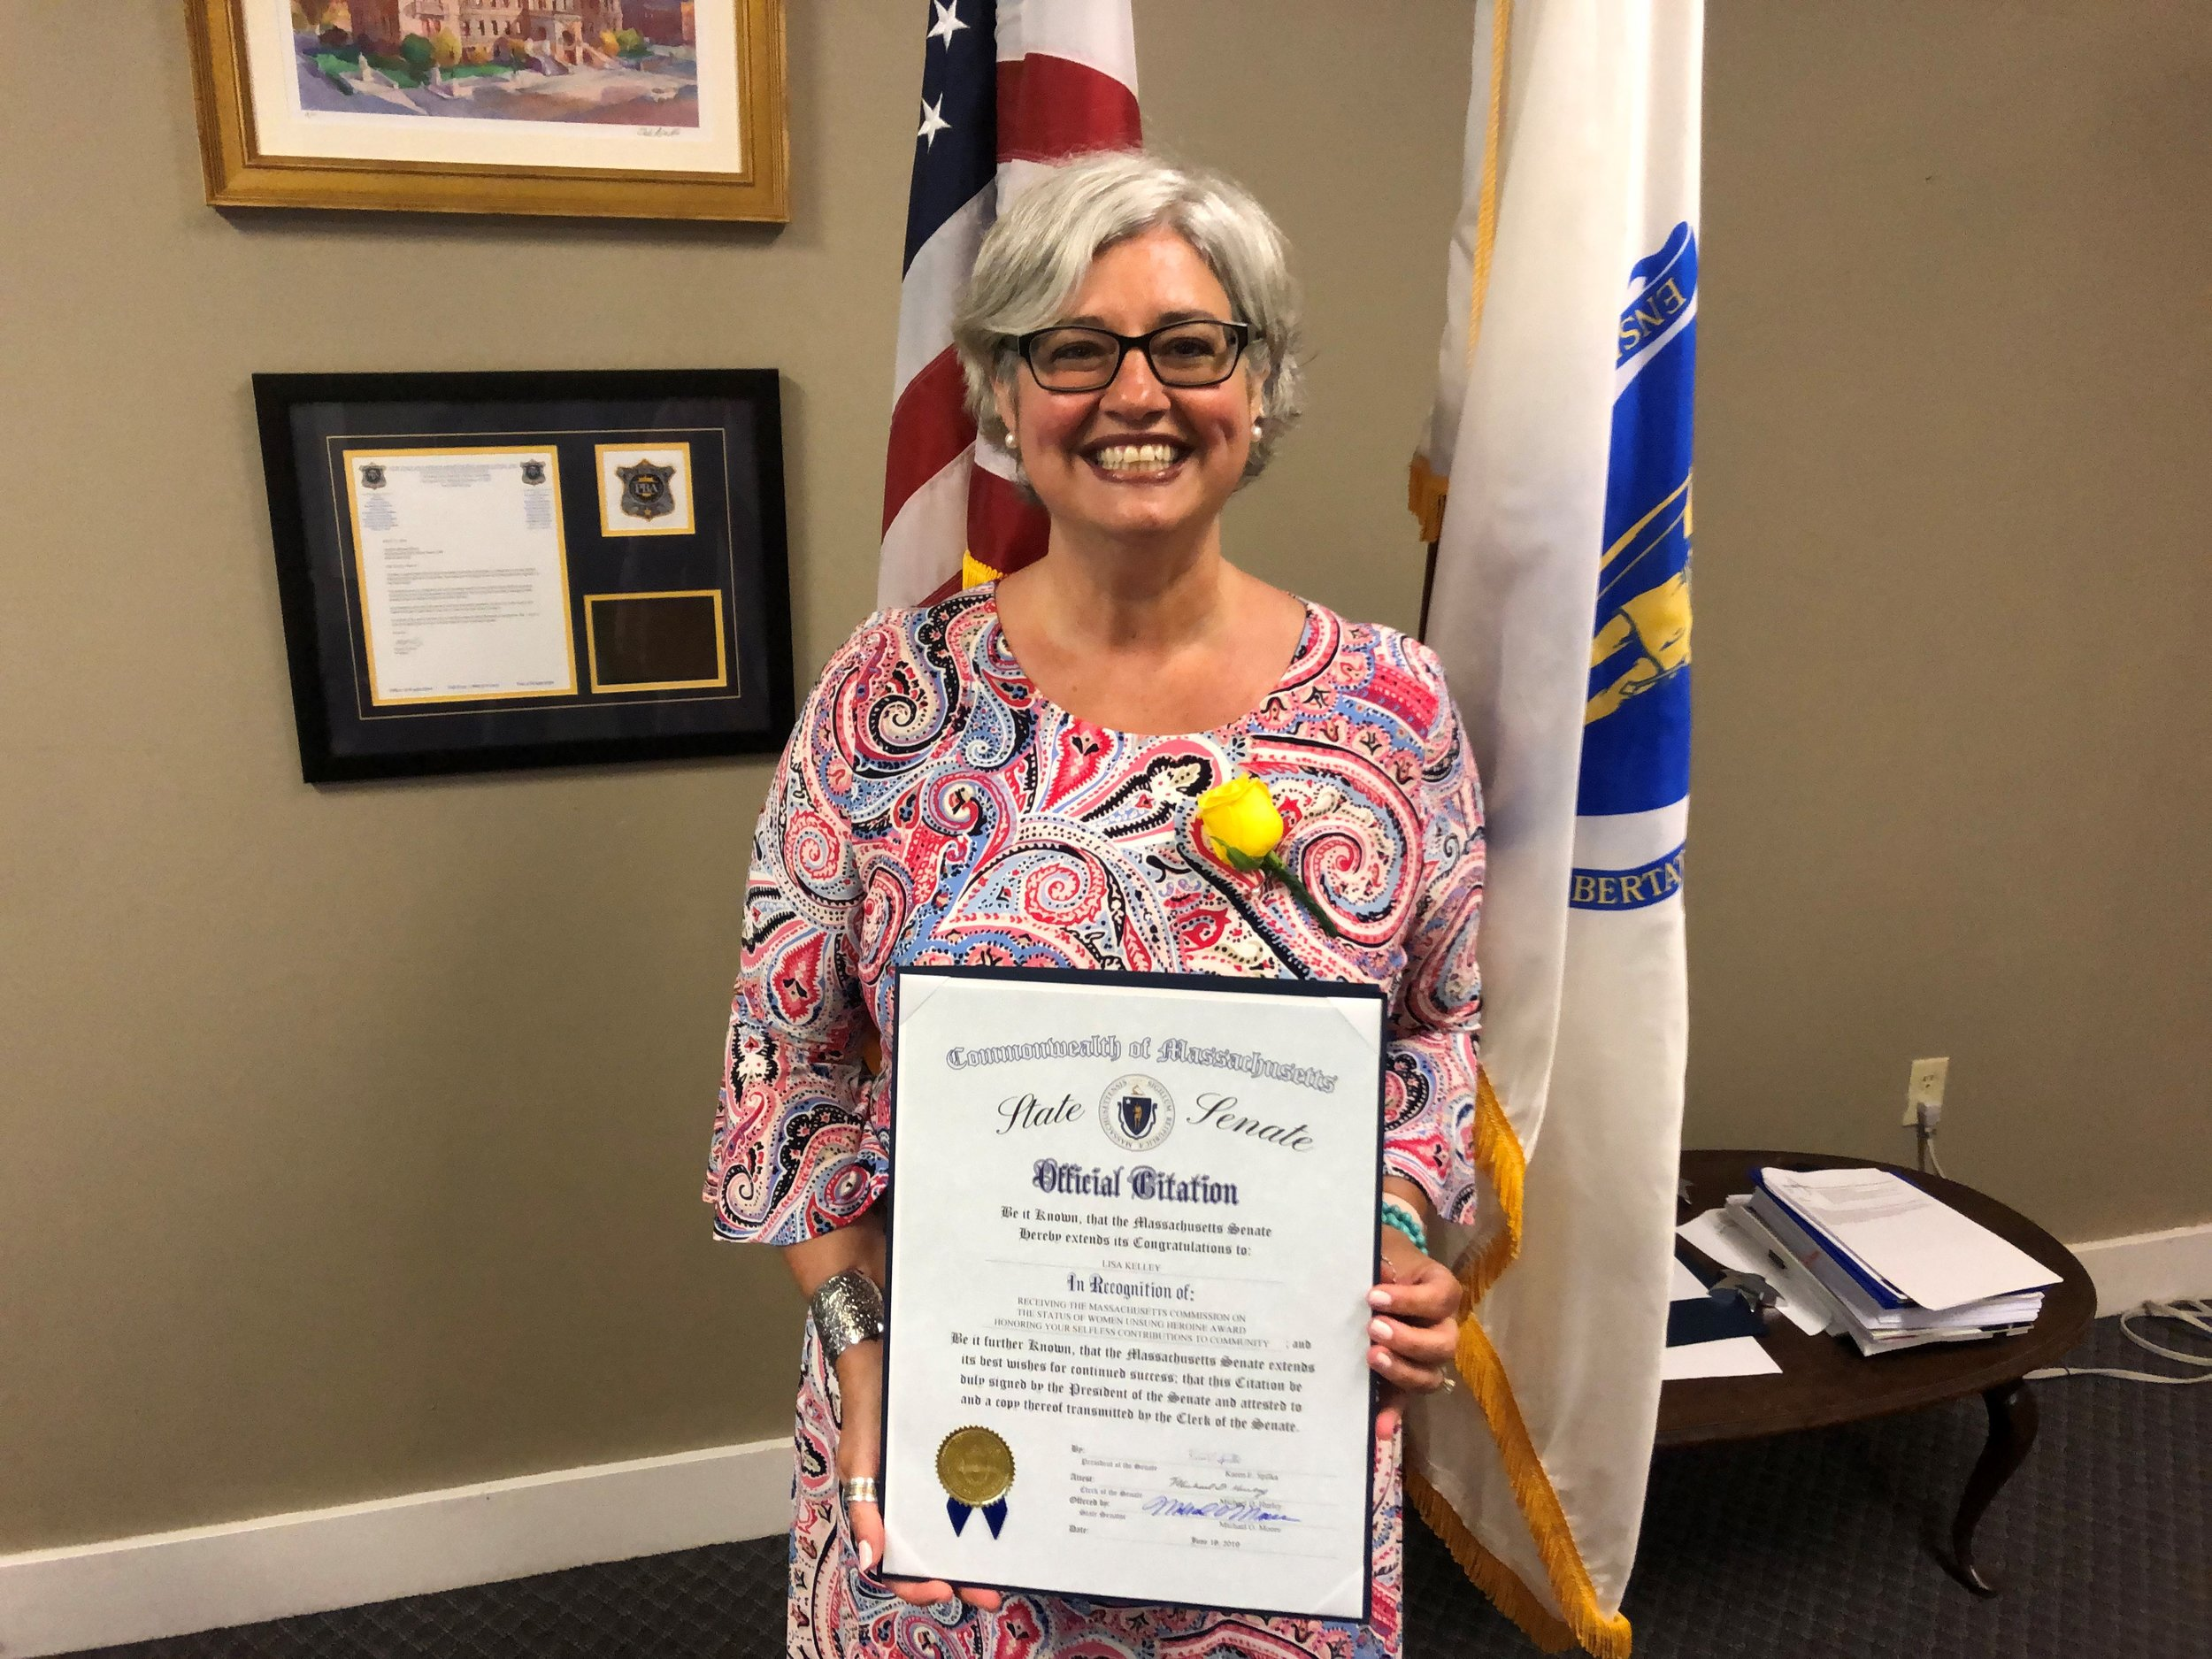 Pictured: Lisa Kelley of Grafton at the Massachusetts State House holding an official citation from the State Senate recognizing her achievements.